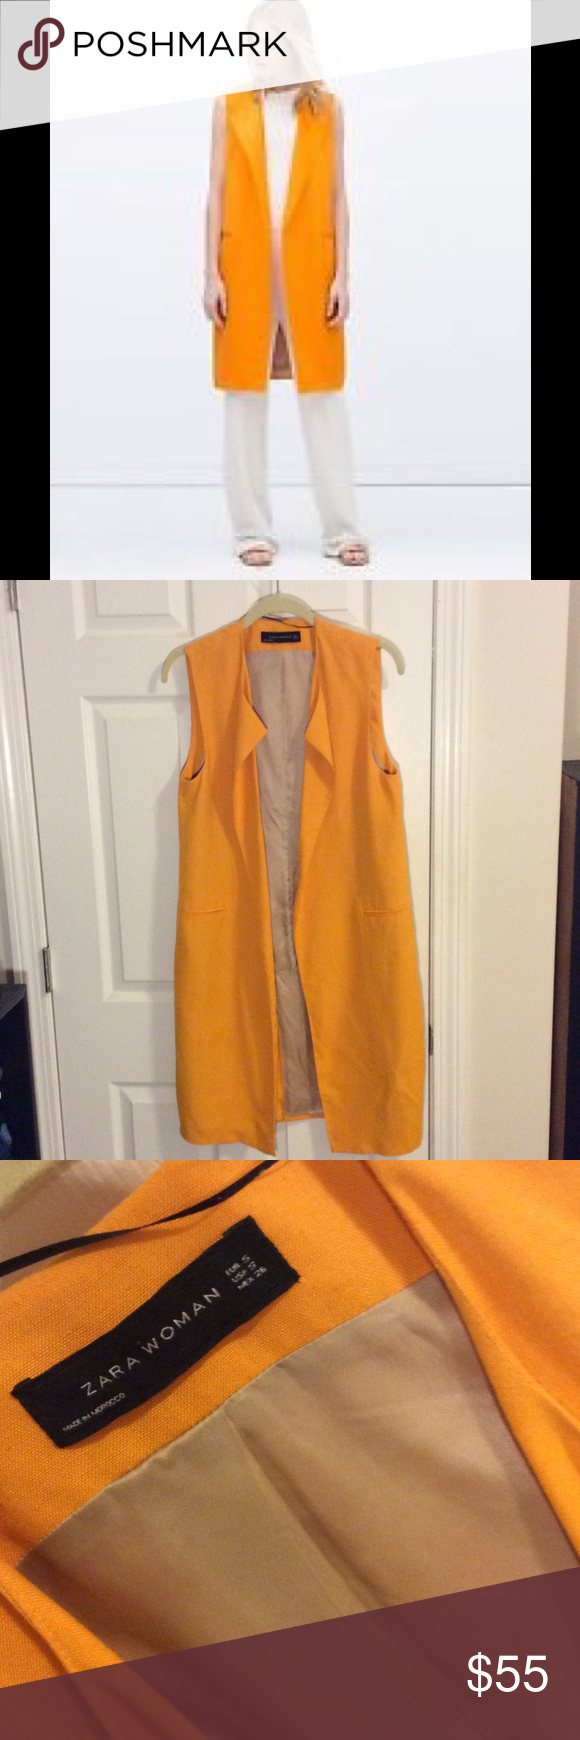 Zara Orange Waistcoat | Zara jackets, Coats and Tunics